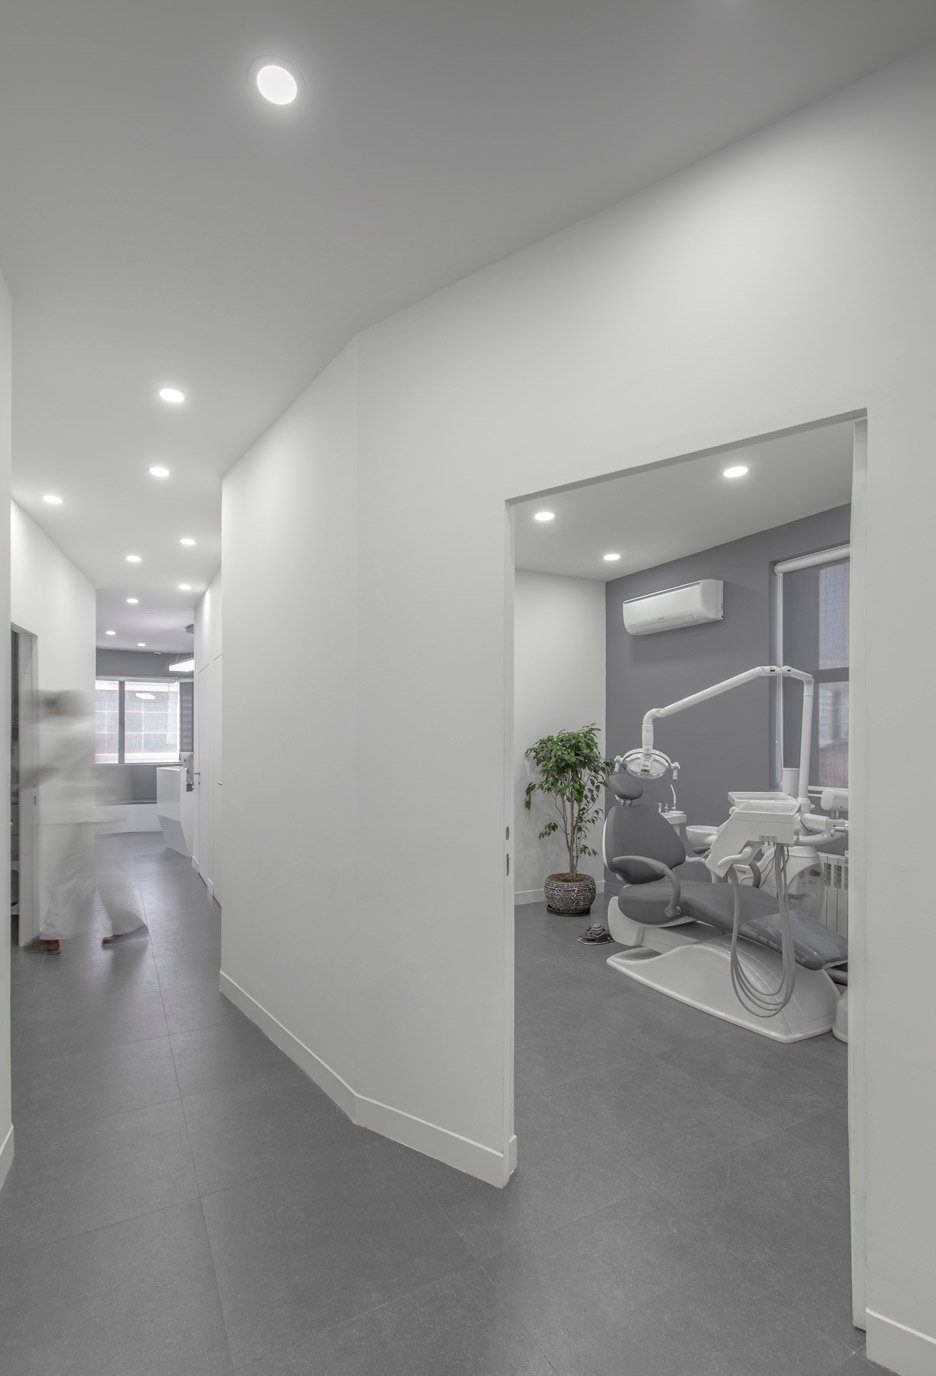 ayeneh office designs minimal interior for iranian dental clinic